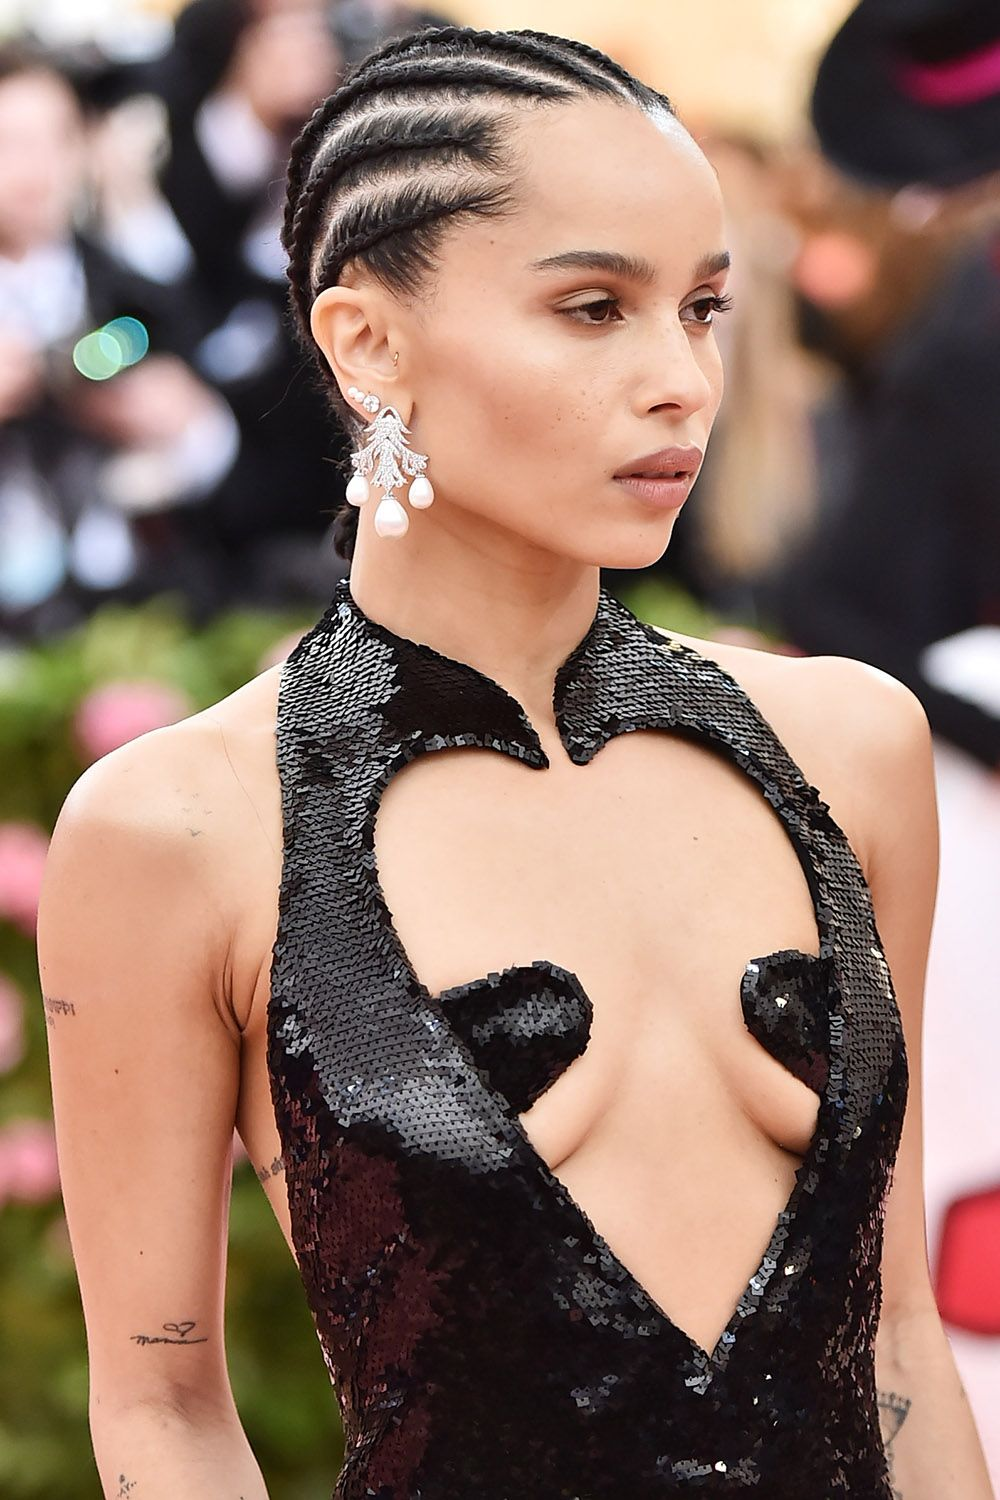 Zoë Kravitz is Slated to Play Catwoman